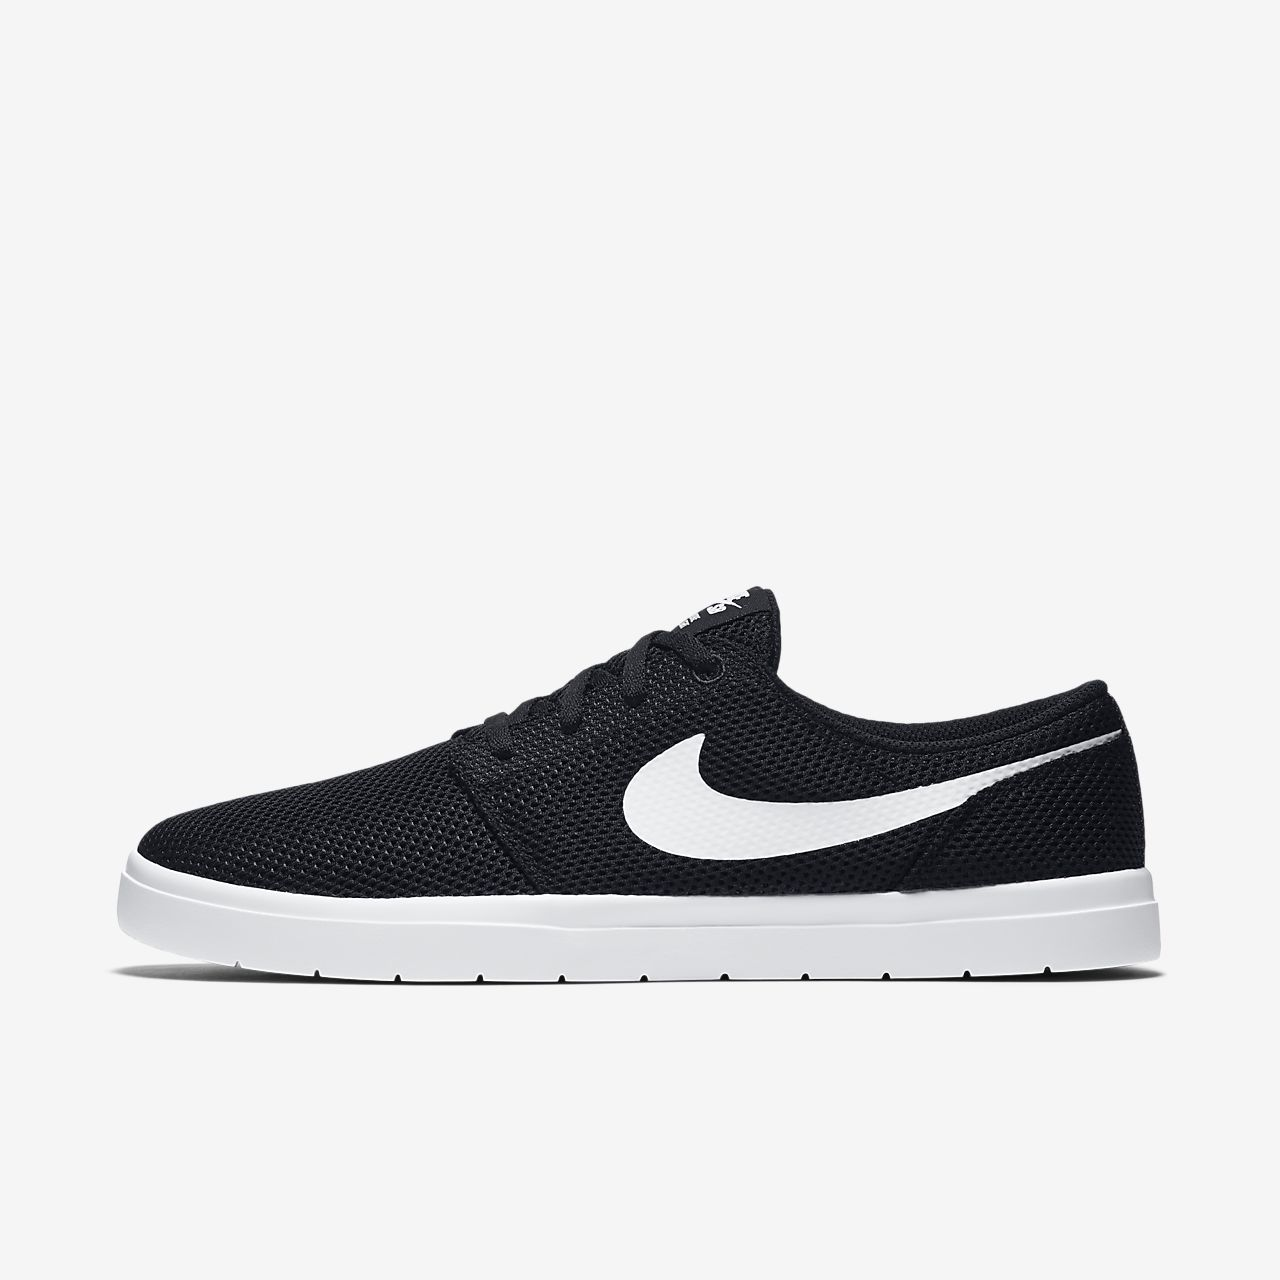 reputable site a3c65 d0efd ... Nike SB Portmore II Ultralight Mens Skateboarding Shoe